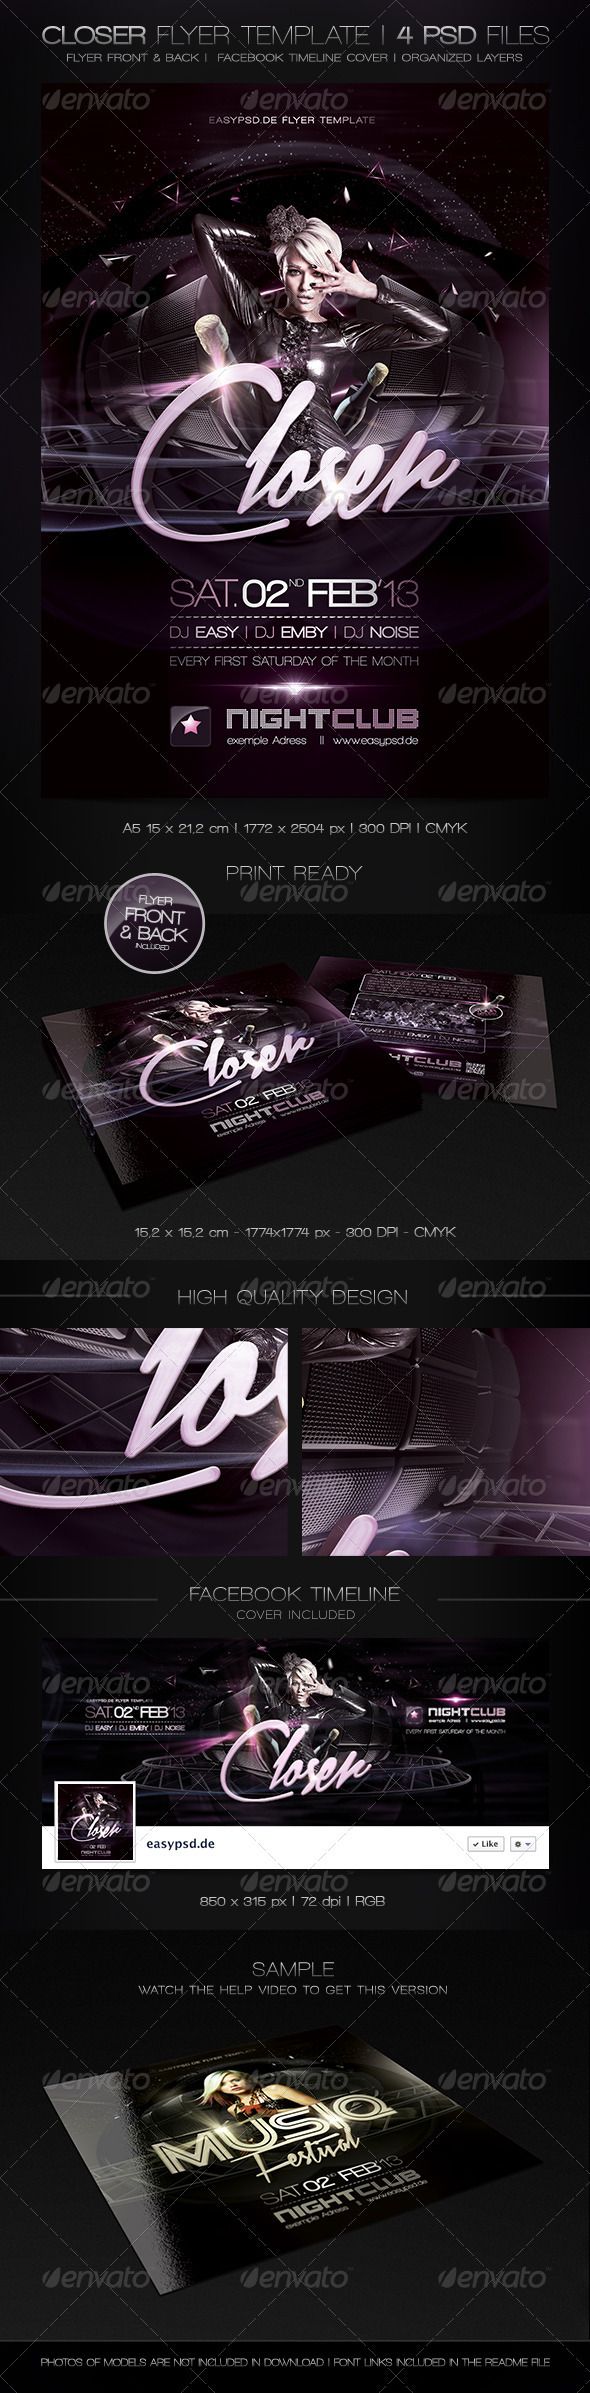 Closer Flyer Template - Clubs & Parties Events